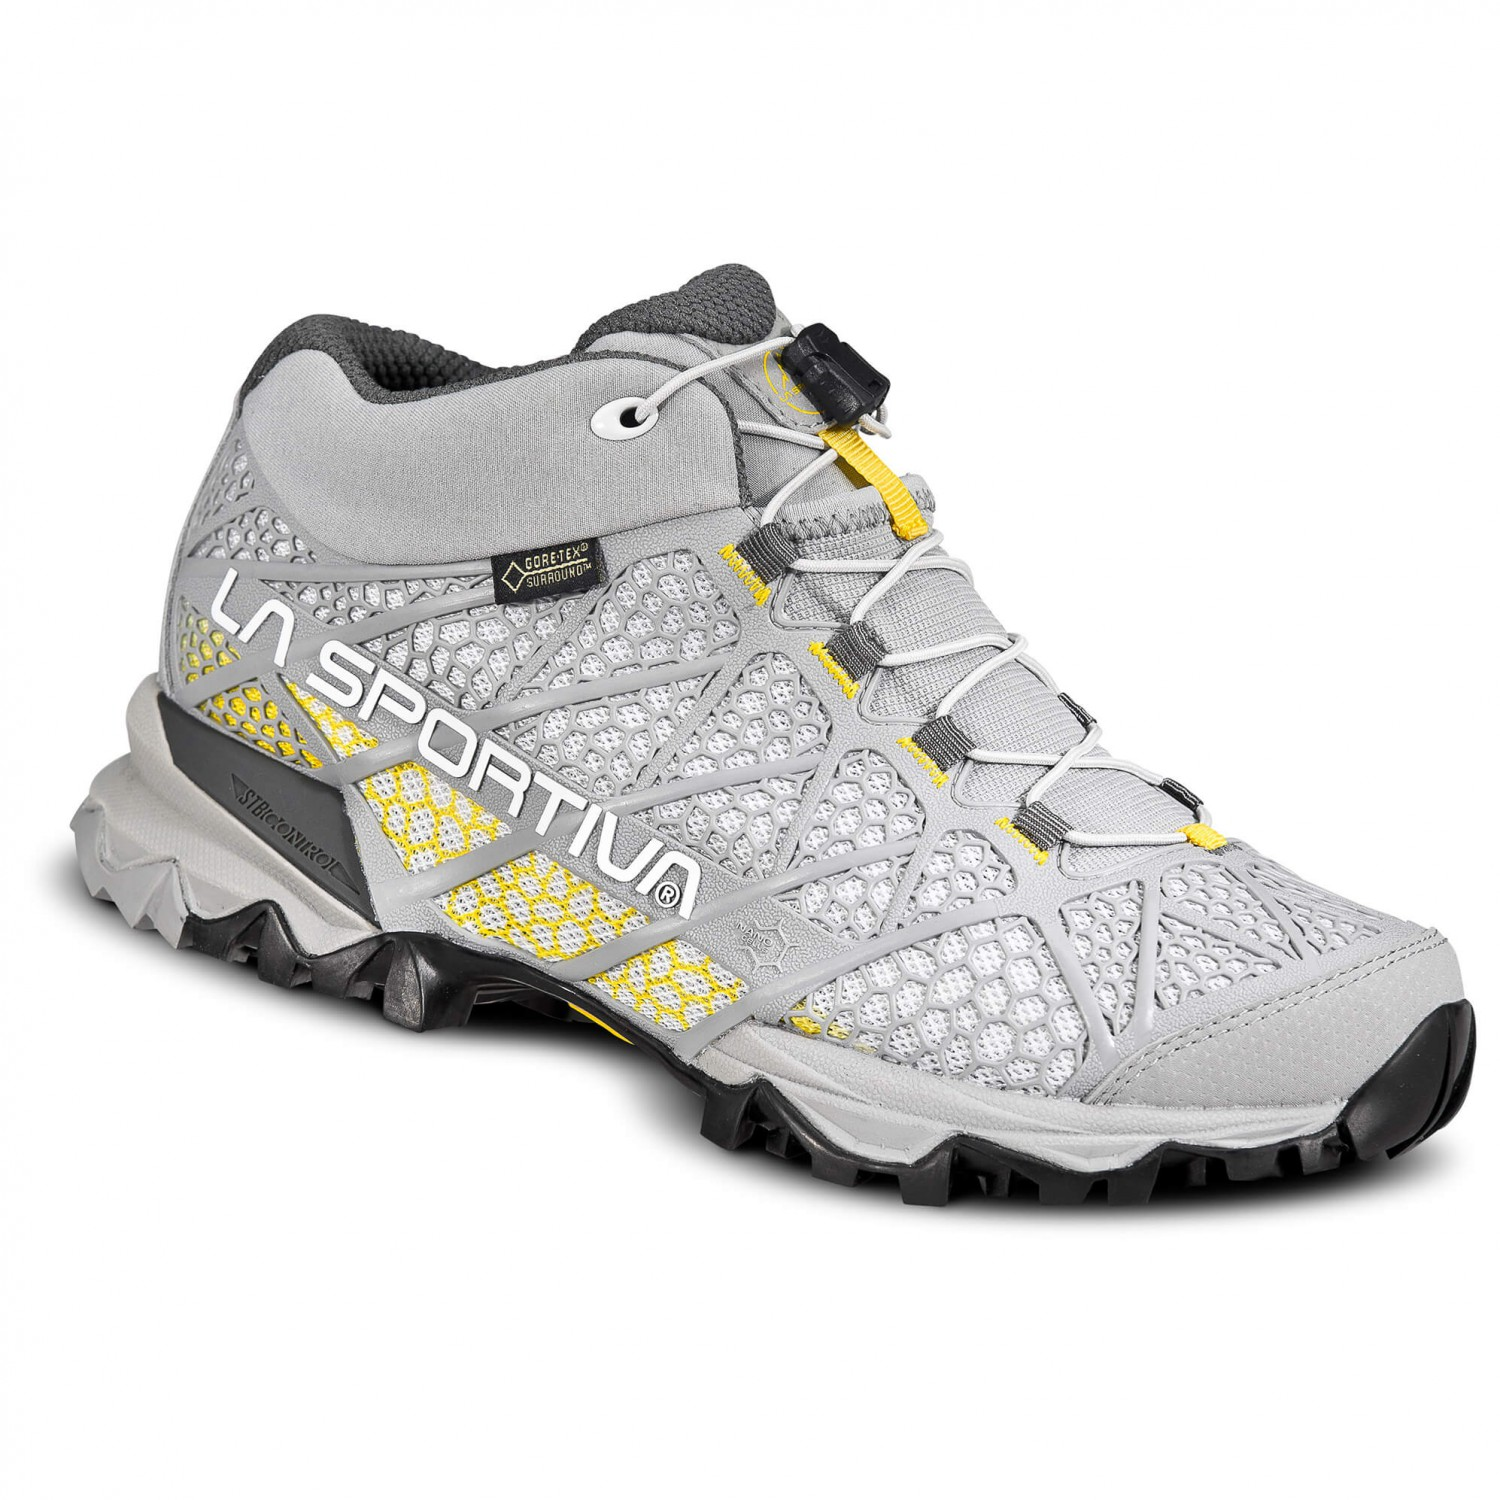 la sportiva s synthesis mid gtx hiking shoes